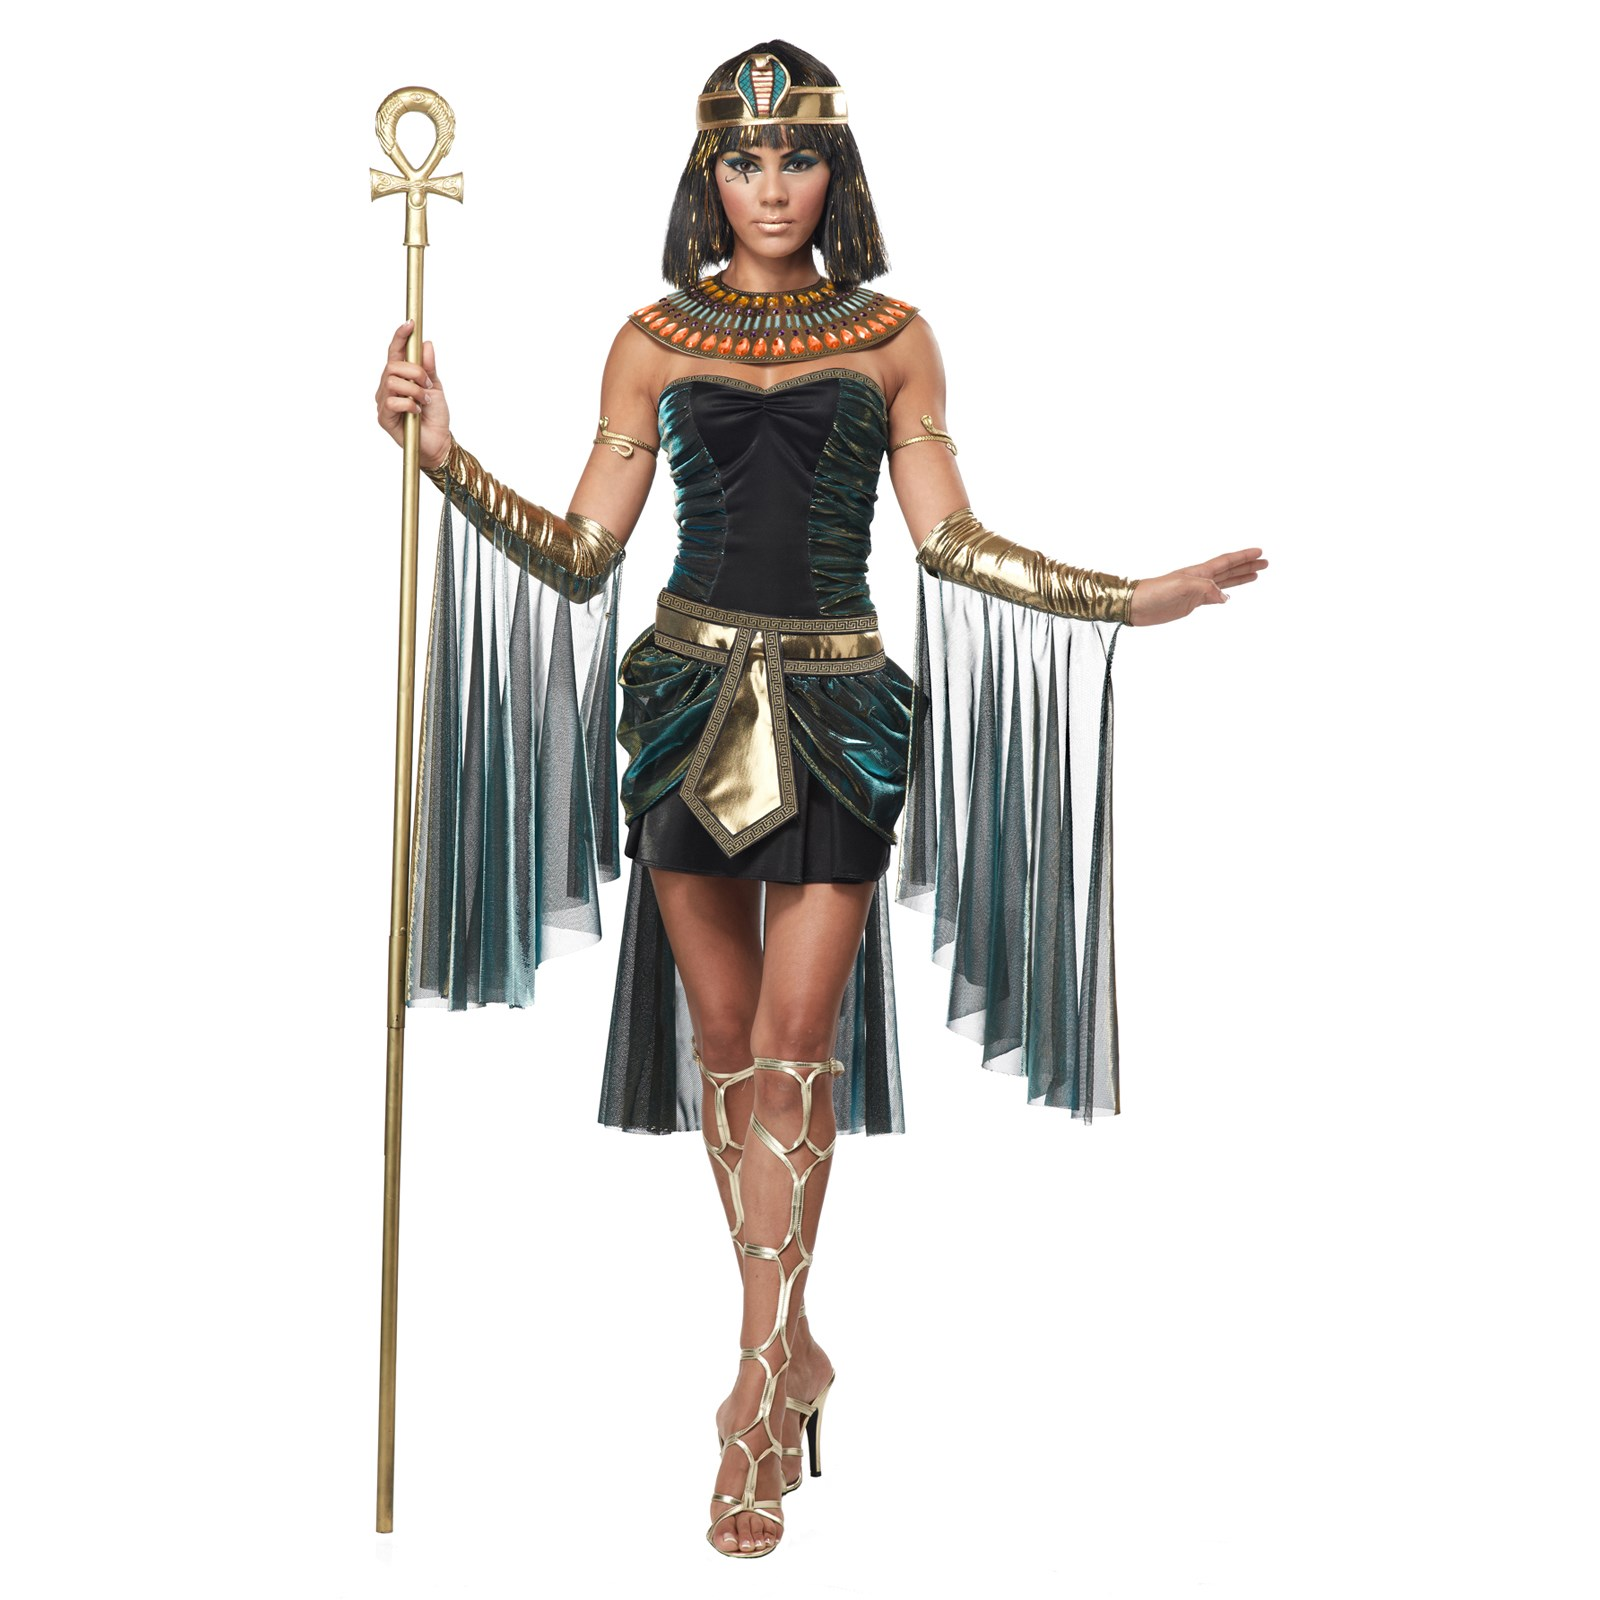 Home gt gt cleopatra costumes gt gt jewel of the nile egyptian adult - Egyptian Goddess Costume For Adults